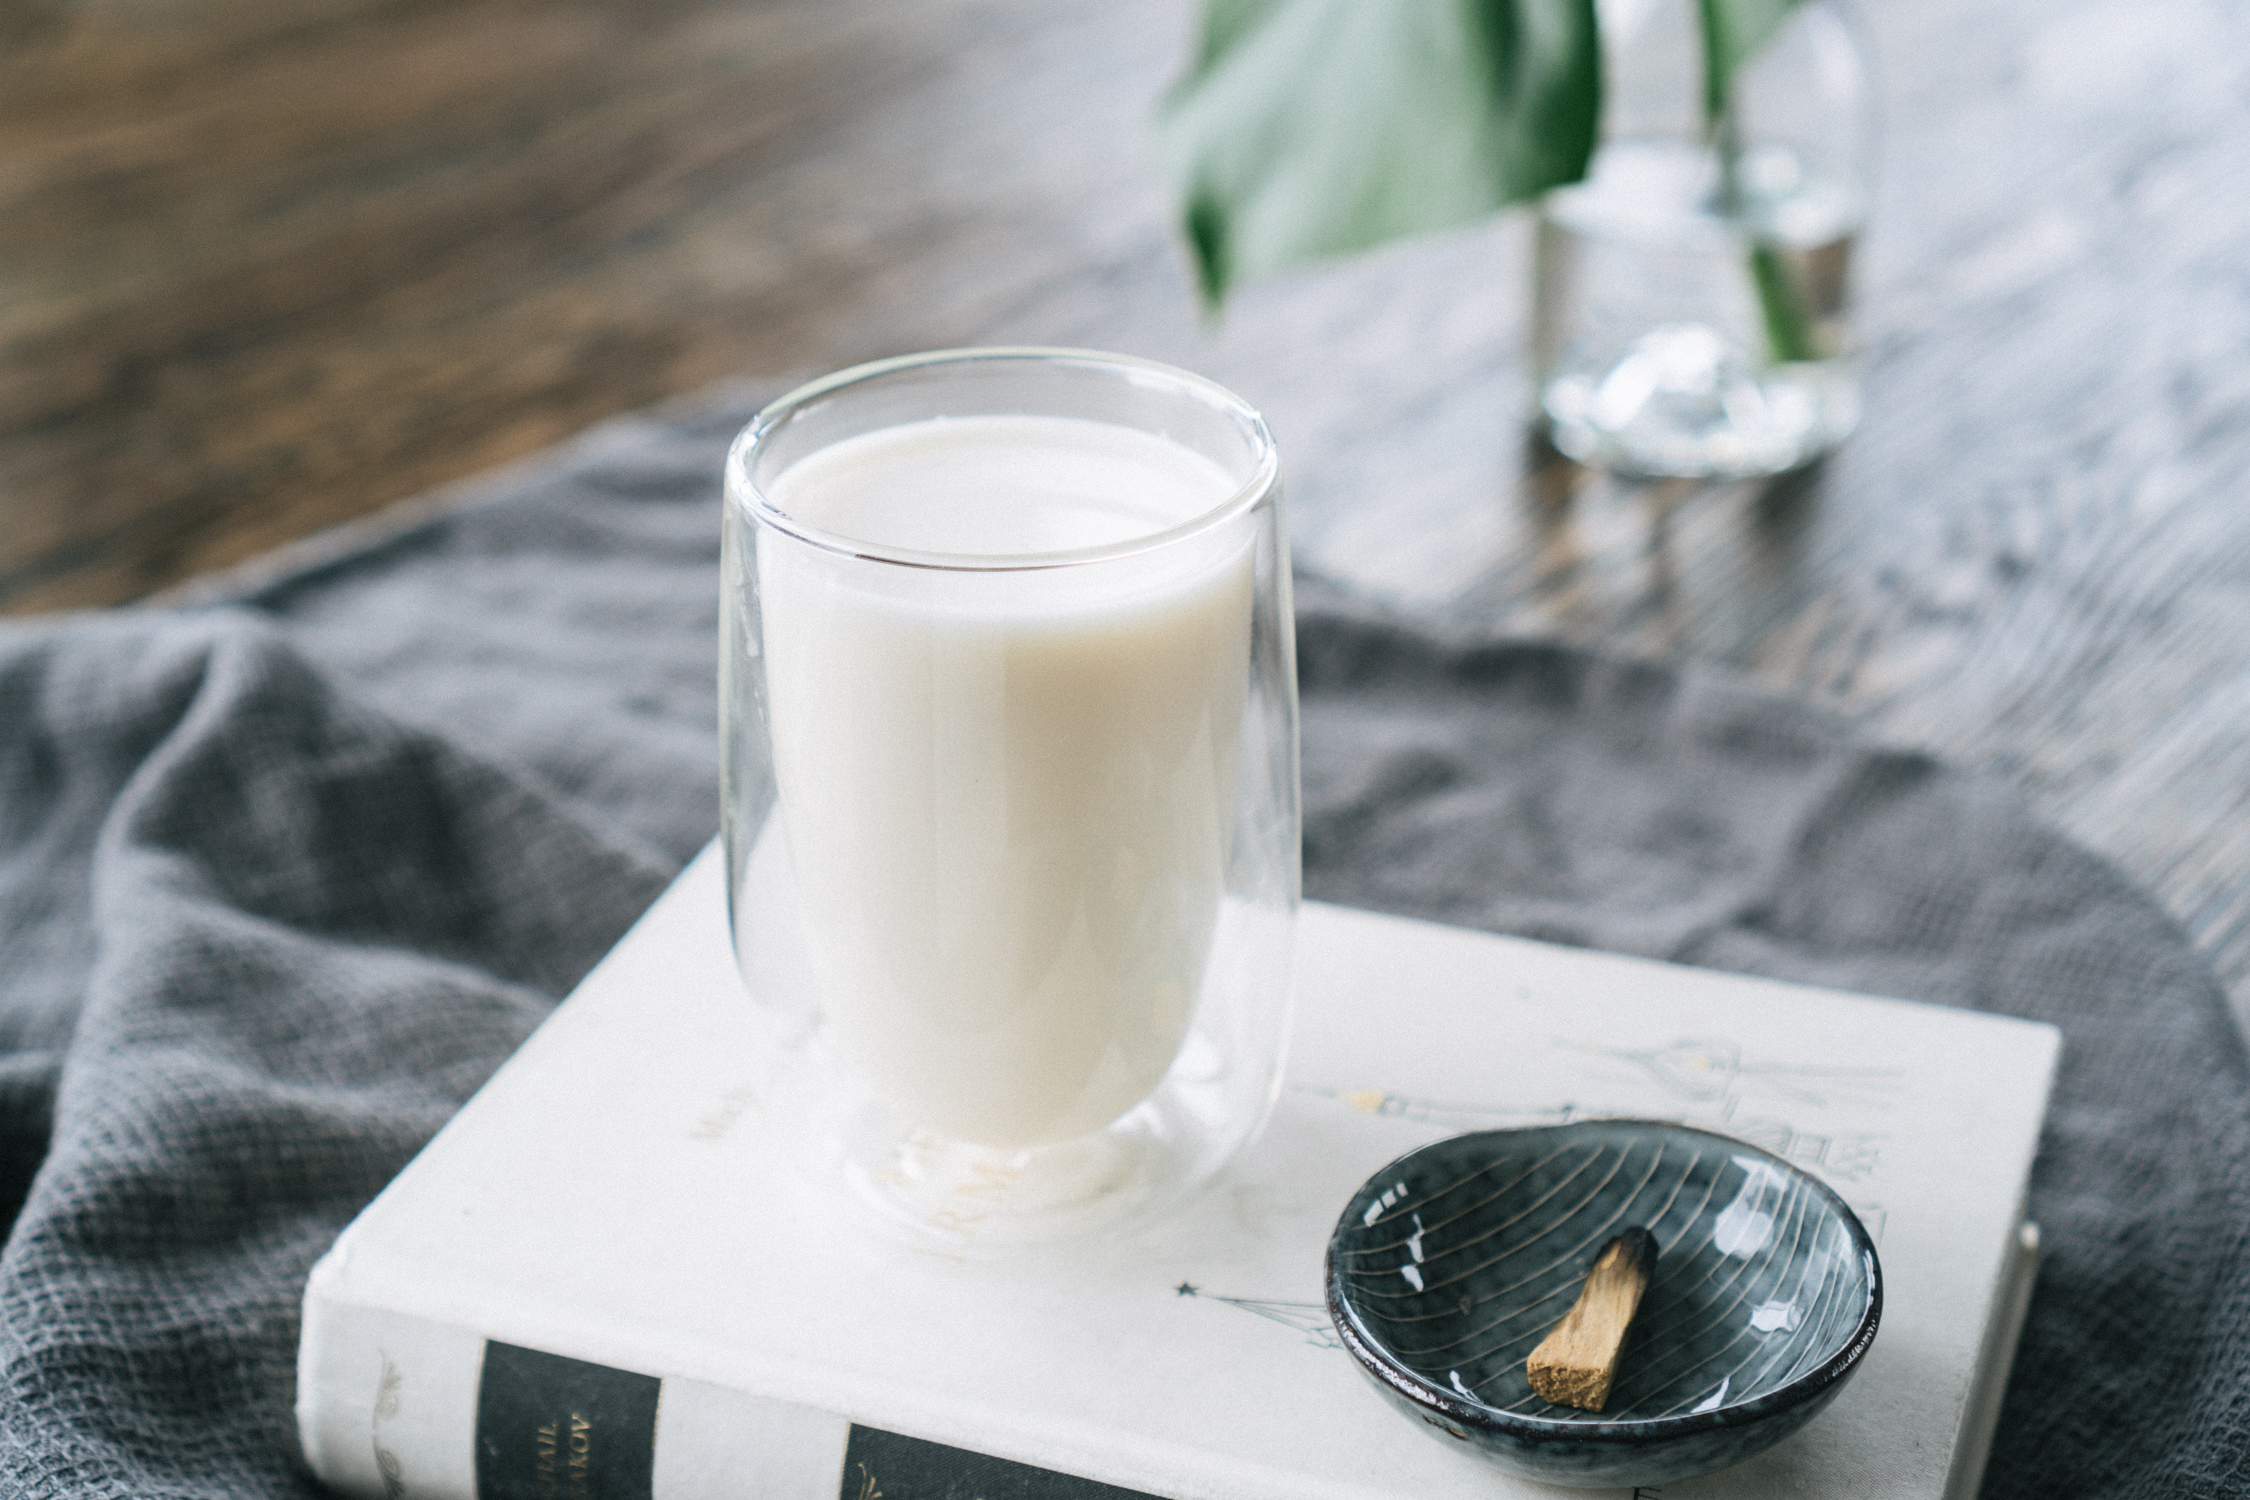 homemade_almond_milk-4.jpg